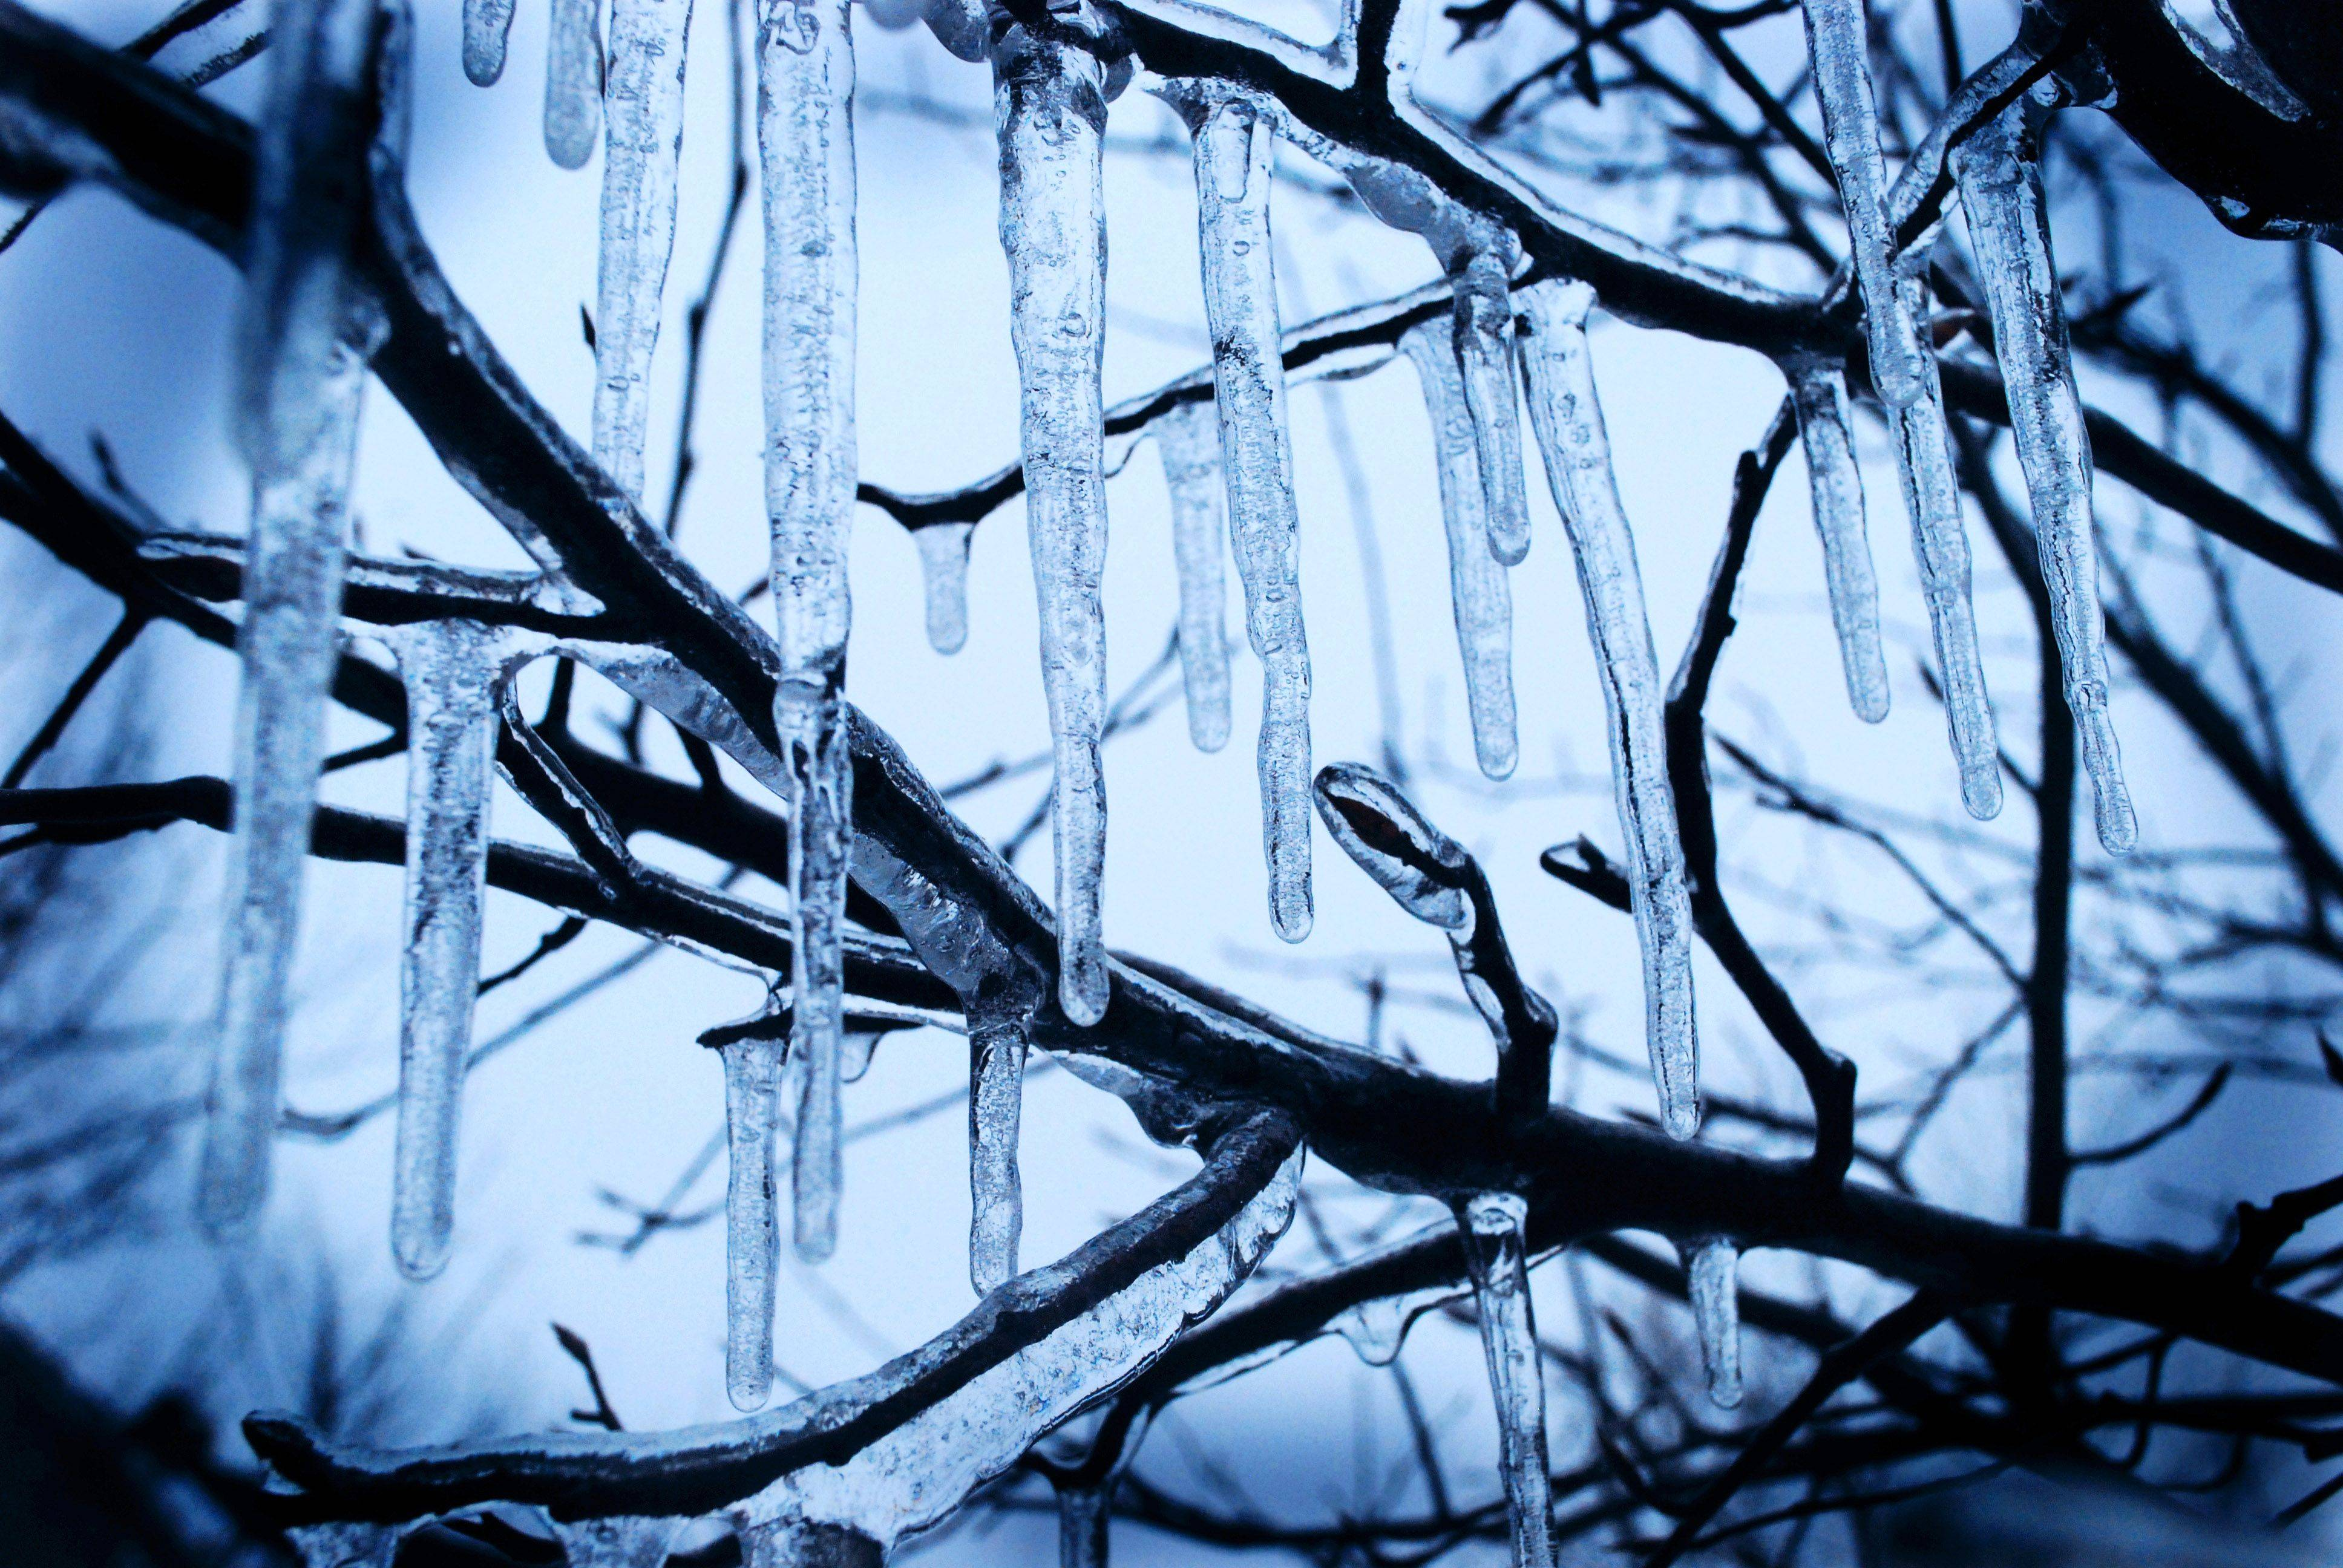 Brendan McGee of BataviaThis photo shows icicles hanging from a frozen tree in my backyard.